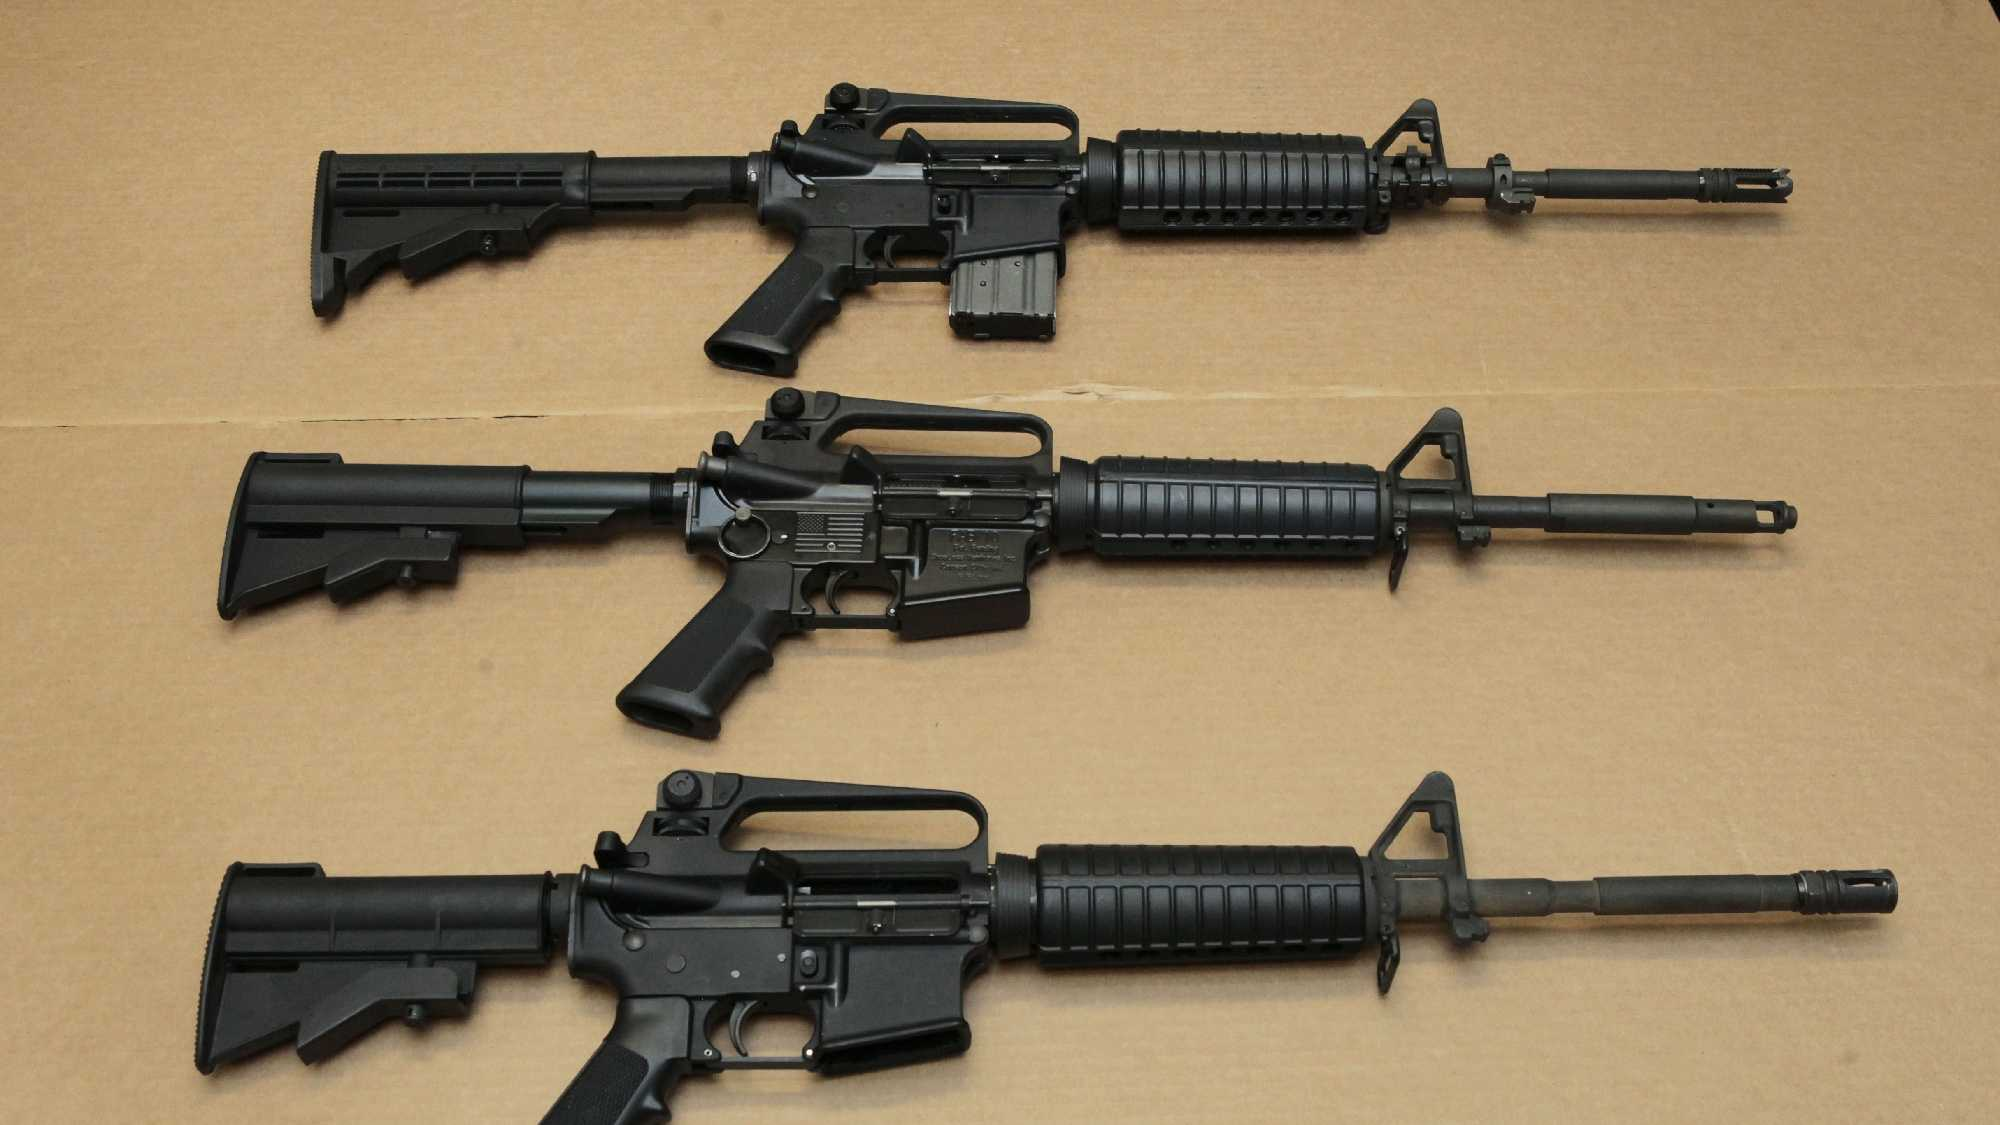 Assault rifles in CA DOJ